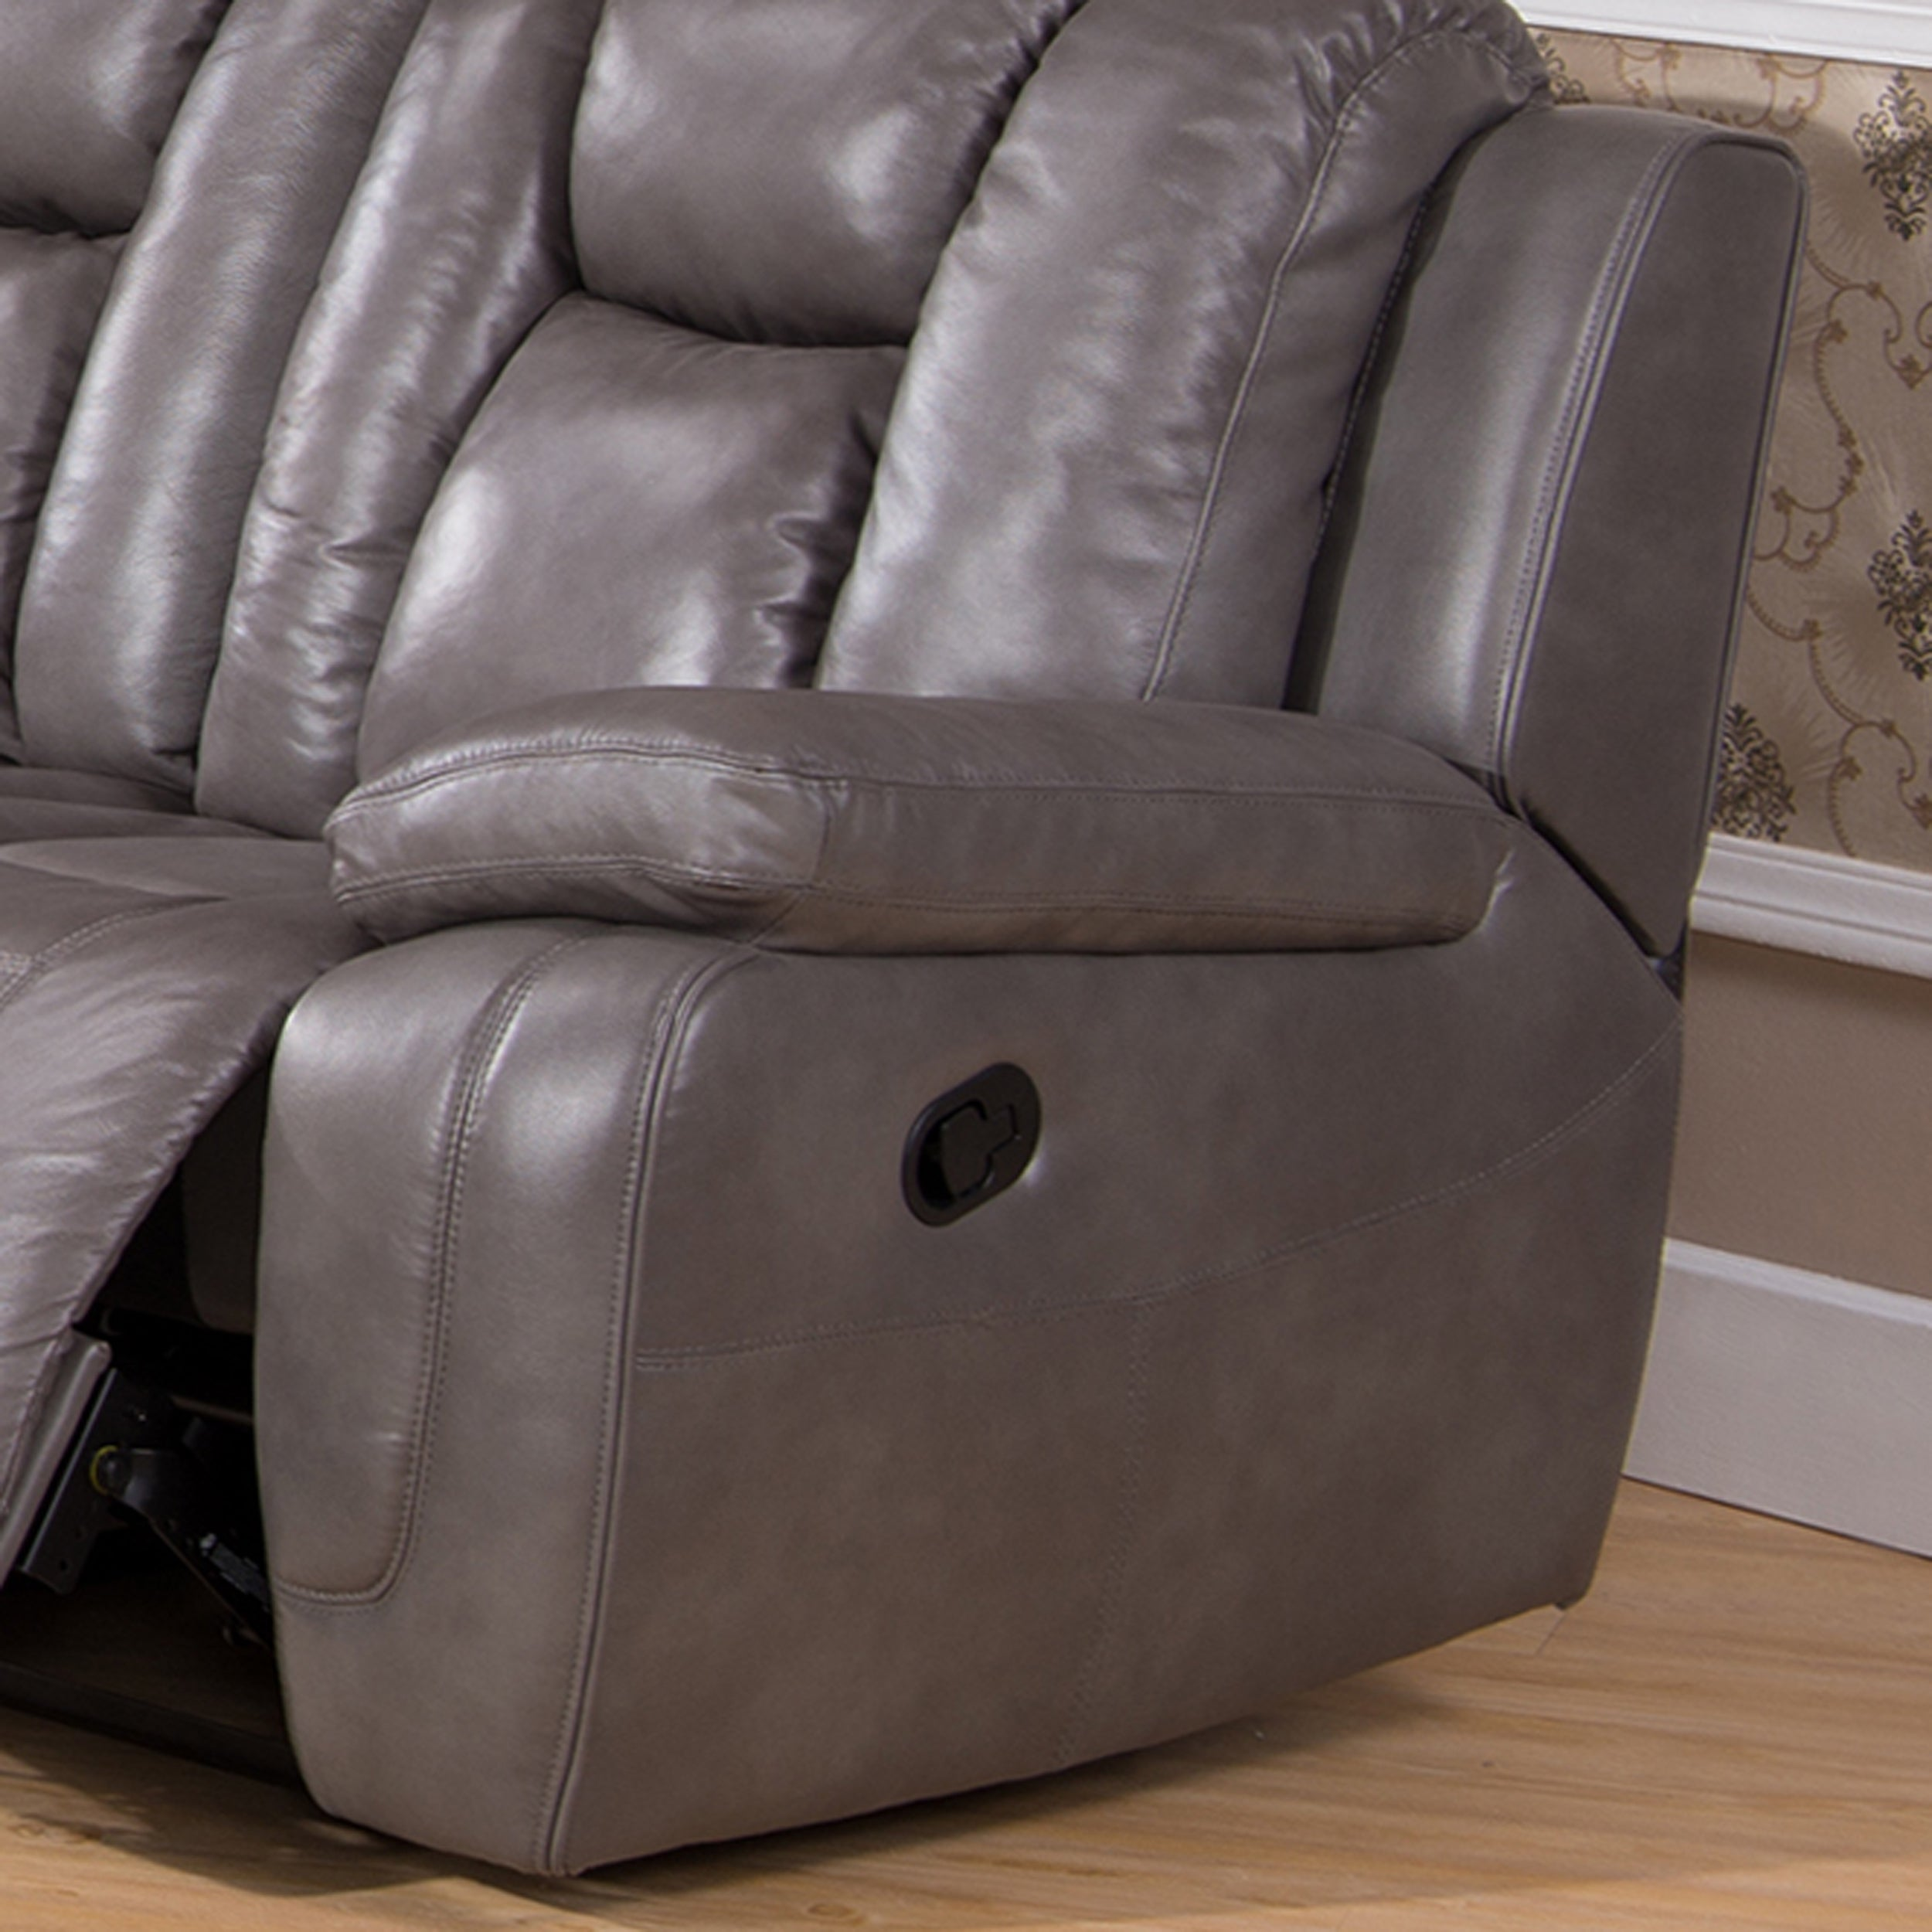 lay design fueler chairs full recline flat relaxer reclining number products rotmans loveseat item chair motion to recliner